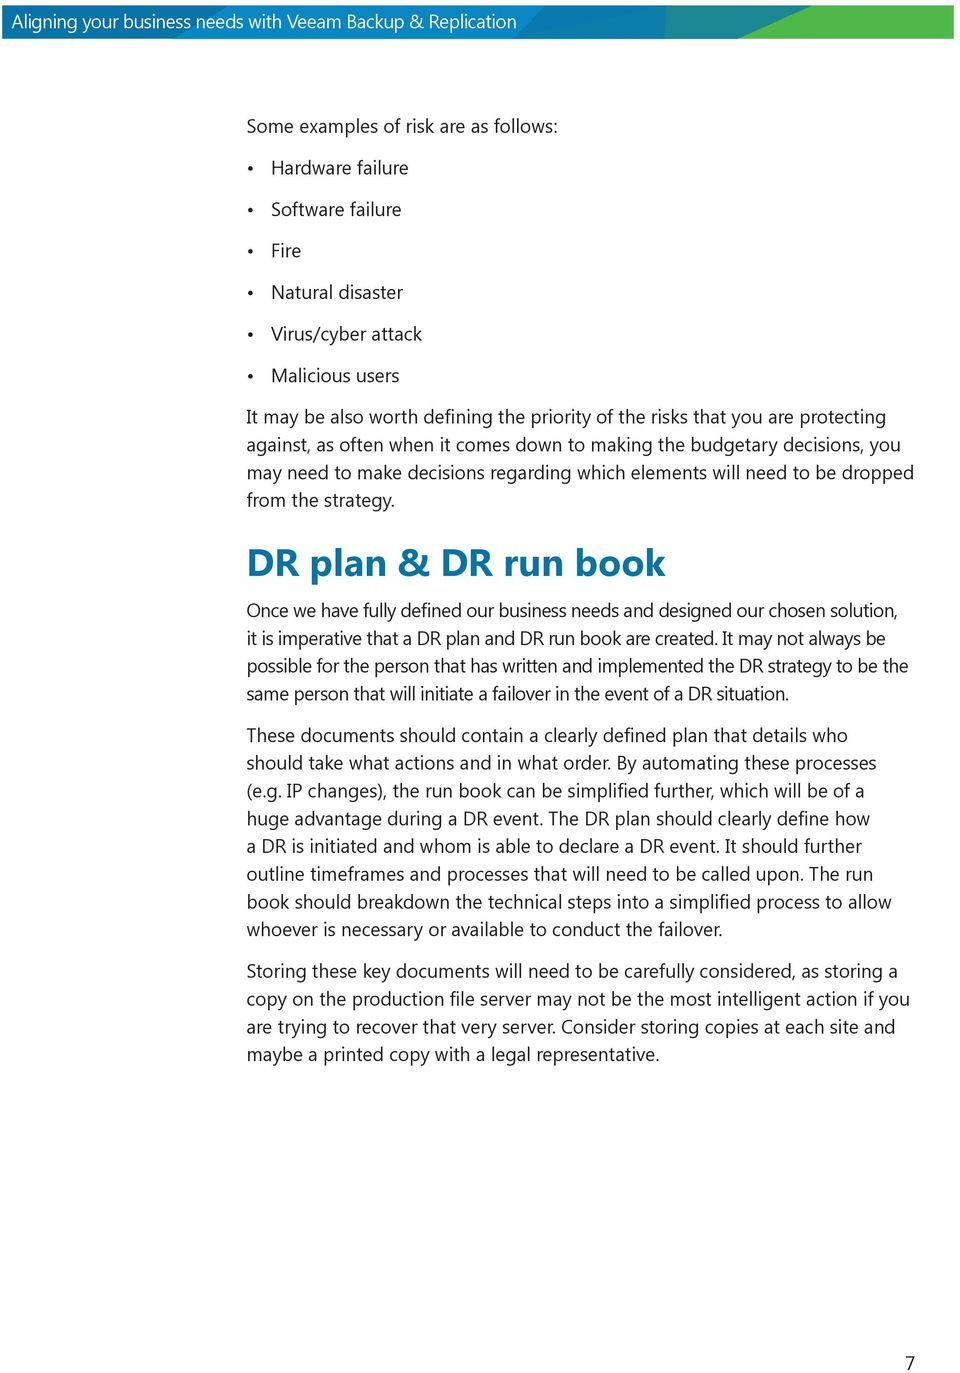 DR plan & DR run book Once we have fully defined our business needs and designed our chosen solution, it is imperative that a DR plan and DR run book are created.